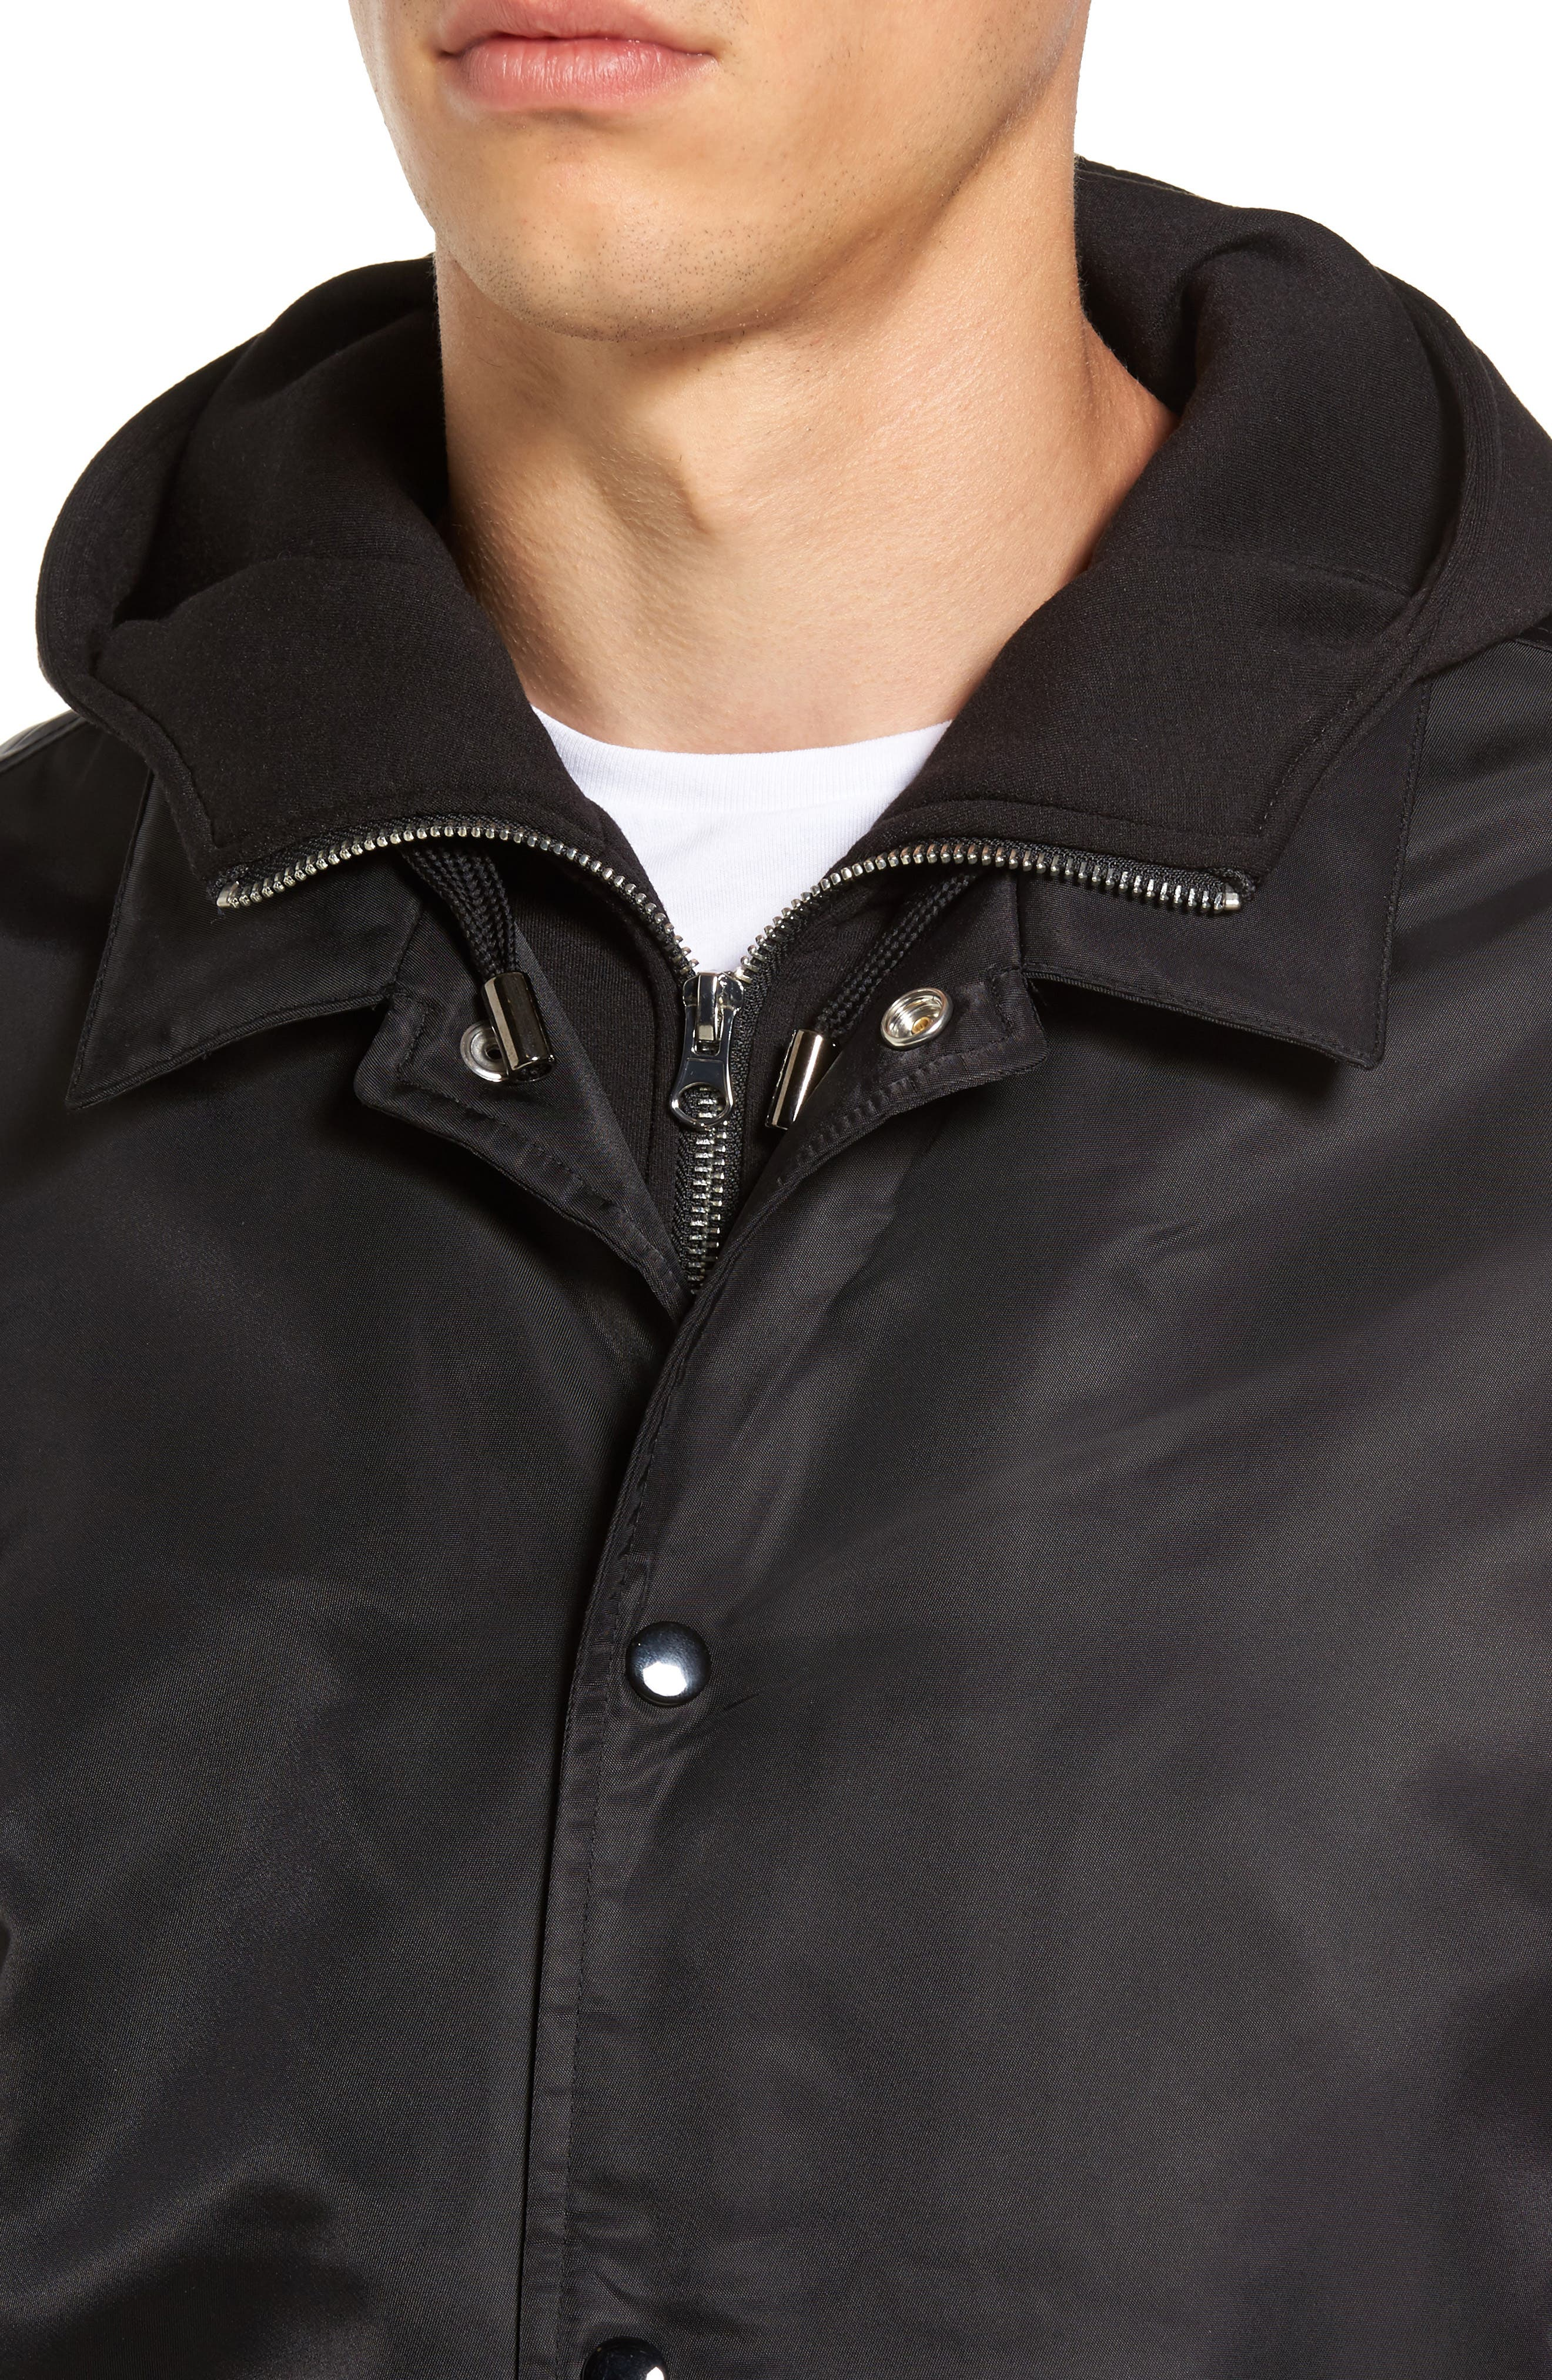 Yorkshire Hooded Coach's Jacket,                             Alternate thumbnail 4, color,                             001